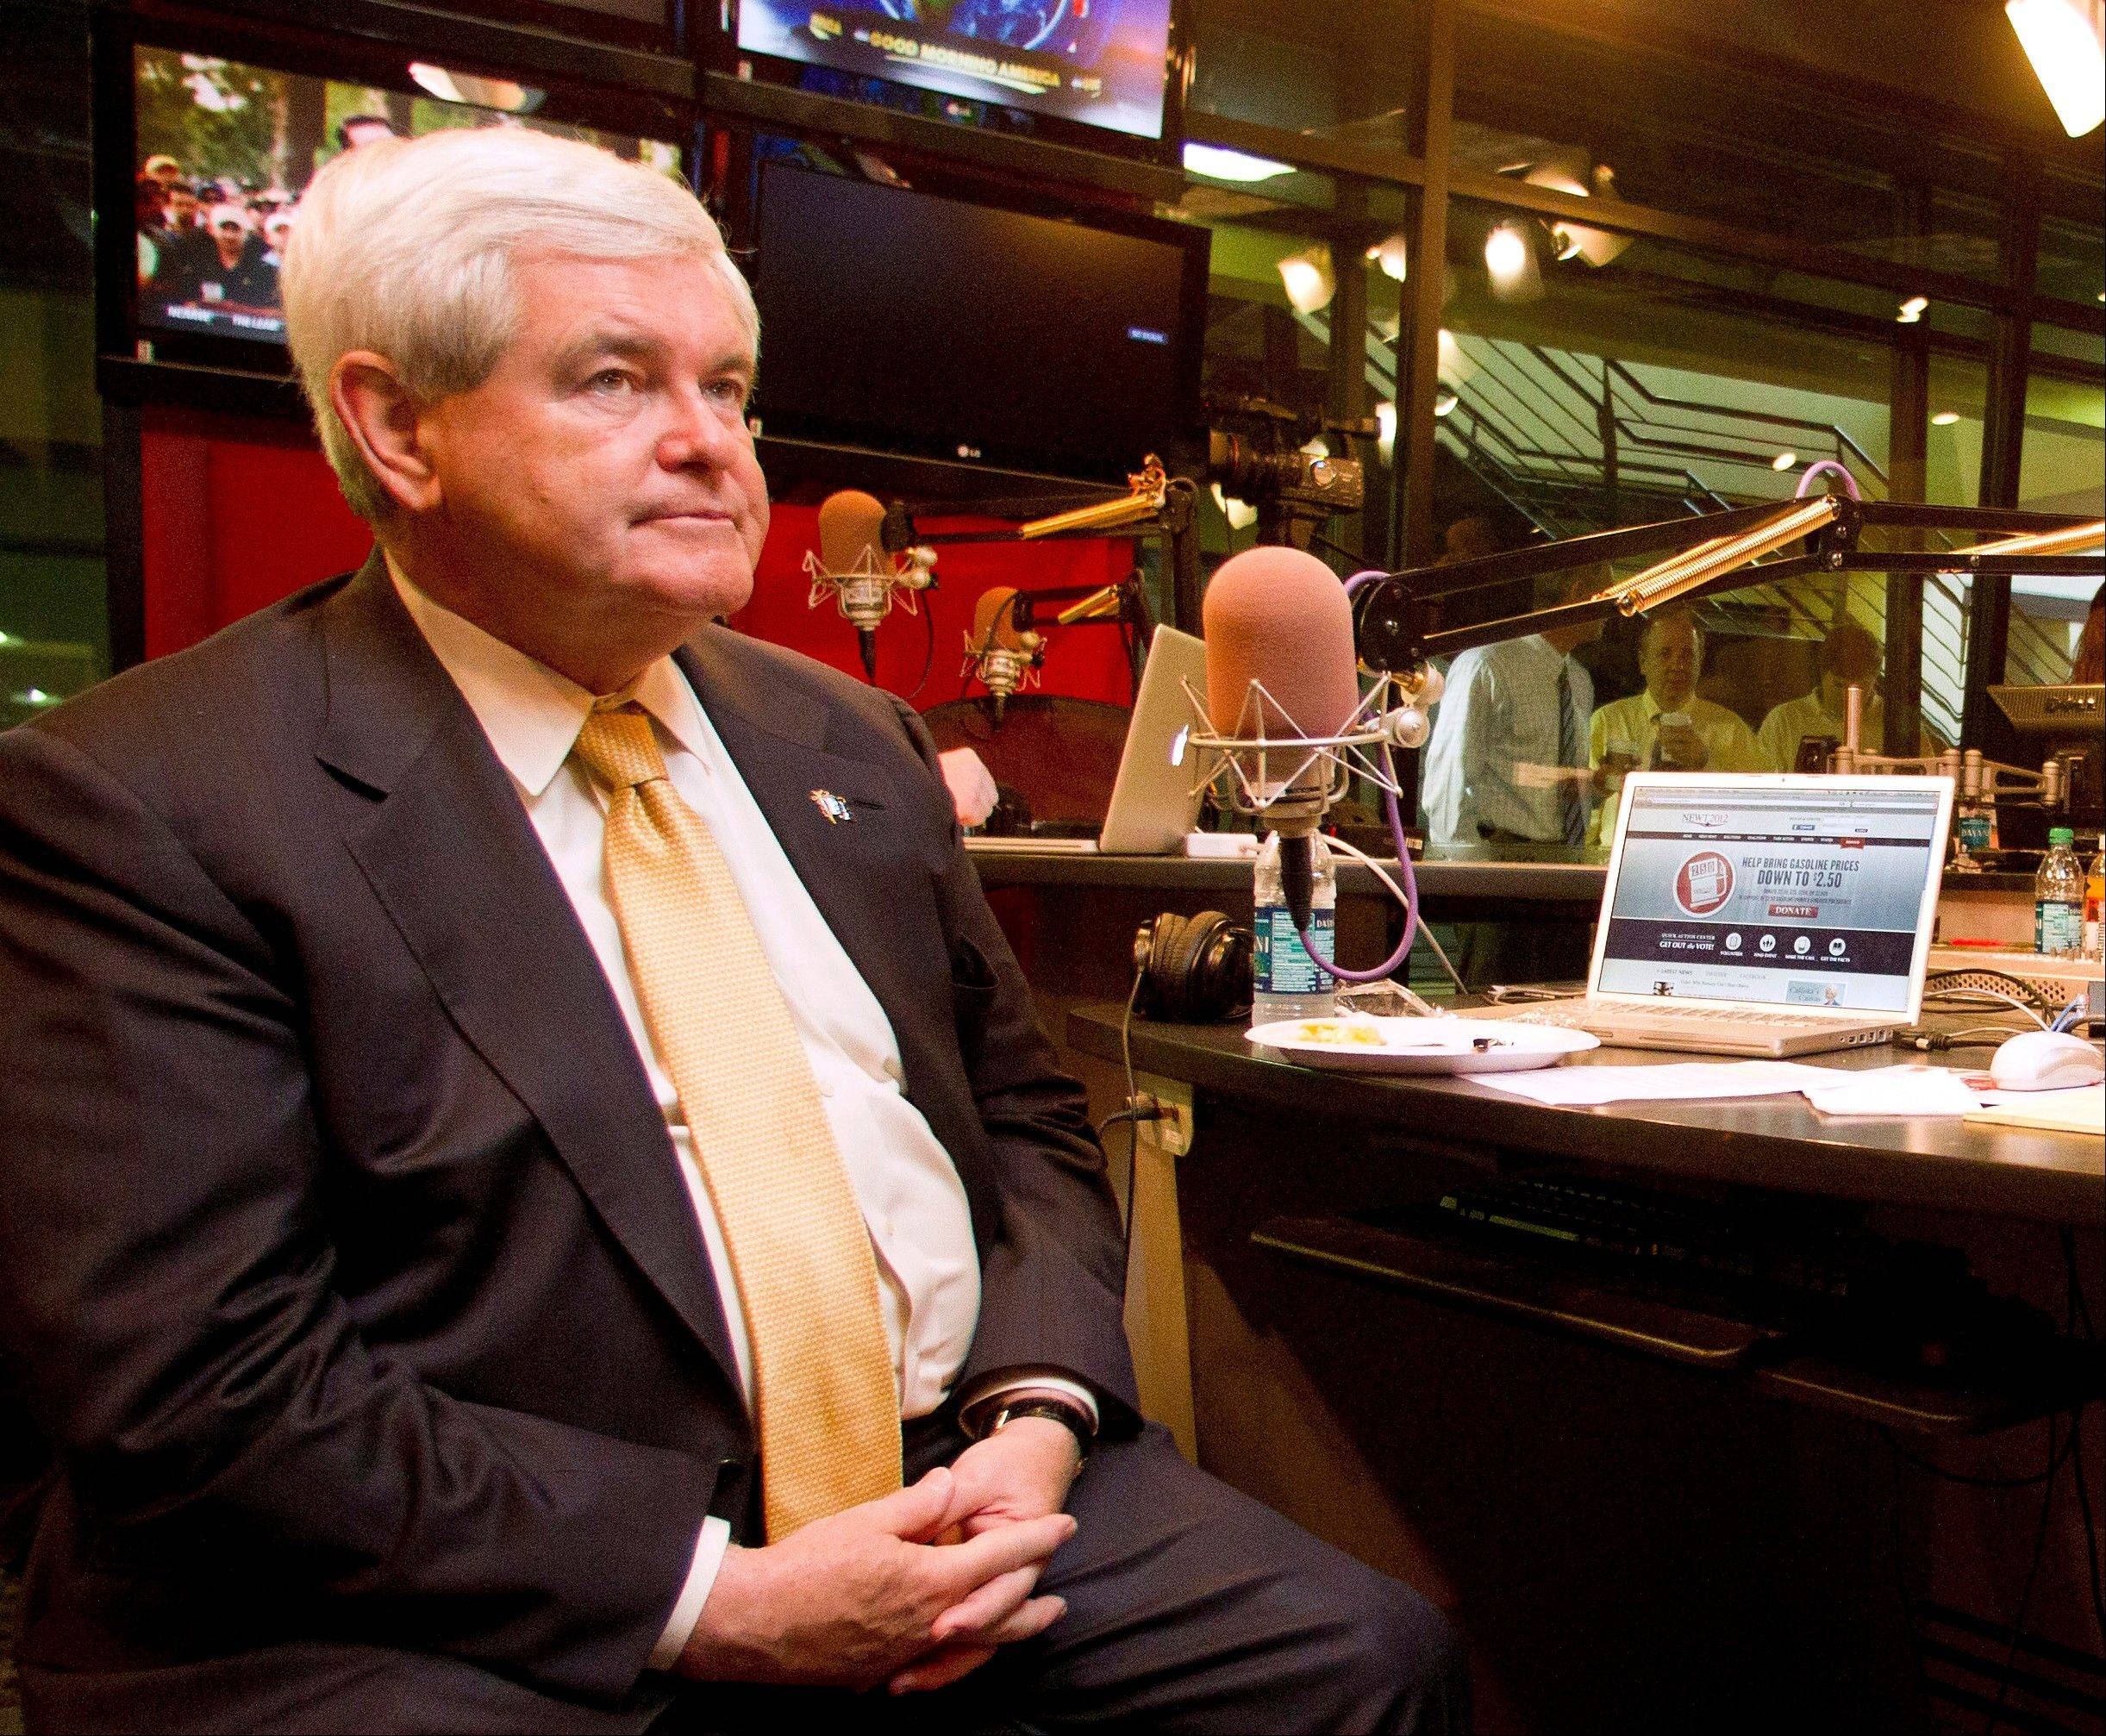 Presidential candidate, former House Speaker Newt Gingrich is schedule to speak Thursday at Judson College in Elgin.